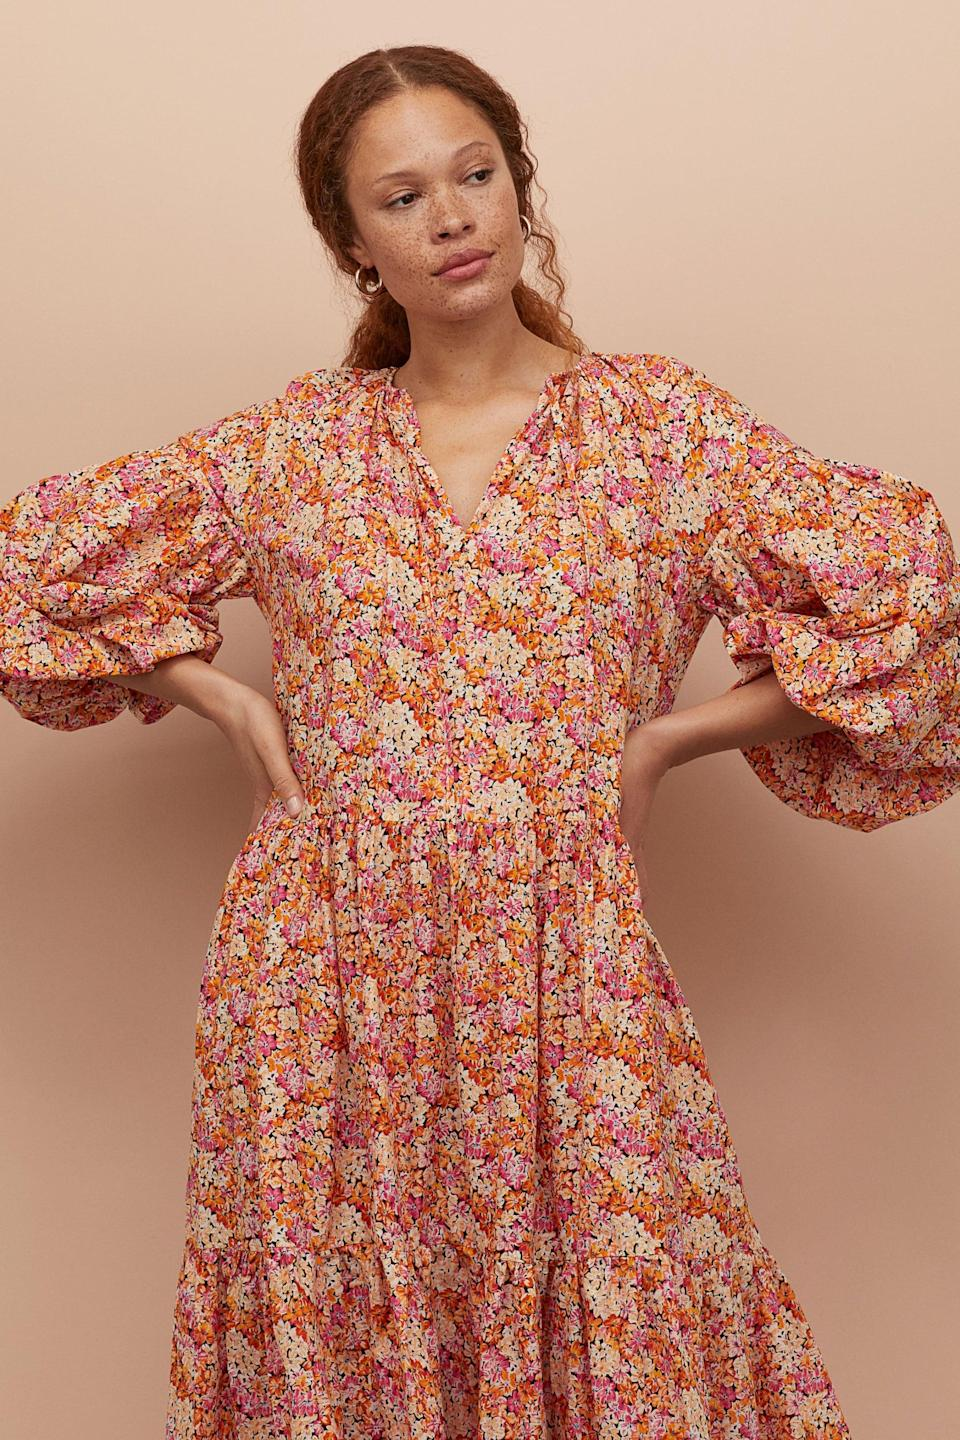 "<p>We have heart eyes for this <a href=""https://www.popsugar.com/buy/HampM-Balloon-sleeved-Cotton-Dress-575008?p_name=H%26amp%3BM%20Balloon-sleeved%20Cotton%20Dress&retailer=www2.hm.com&pid=575008&price=40&evar1=fab%3Aus&evar9=47589535&evar98=https%3A%2F%2Fwww.popsugar.com%2Ffashion%2Fphoto-gallery%2F47589535%2Fimage%2F47590088%2FHM-Balloon-sleeved-Cotton-Dress&list1=shopping%2Cdresses%2Csummer%2Csummer%20fashion%2Cfashion%20shopping&prop13=mobile&pdata=1"" class=""link rapid-noclick-resp"" rel=""nofollow noopener"" target=""_blank"" data-ylk=""slk:H&amp;M Balloon-sleeved Cotton Dress"">H&amp;M Balloon-sleeved Cotton Dress</a> ($40).</p>"